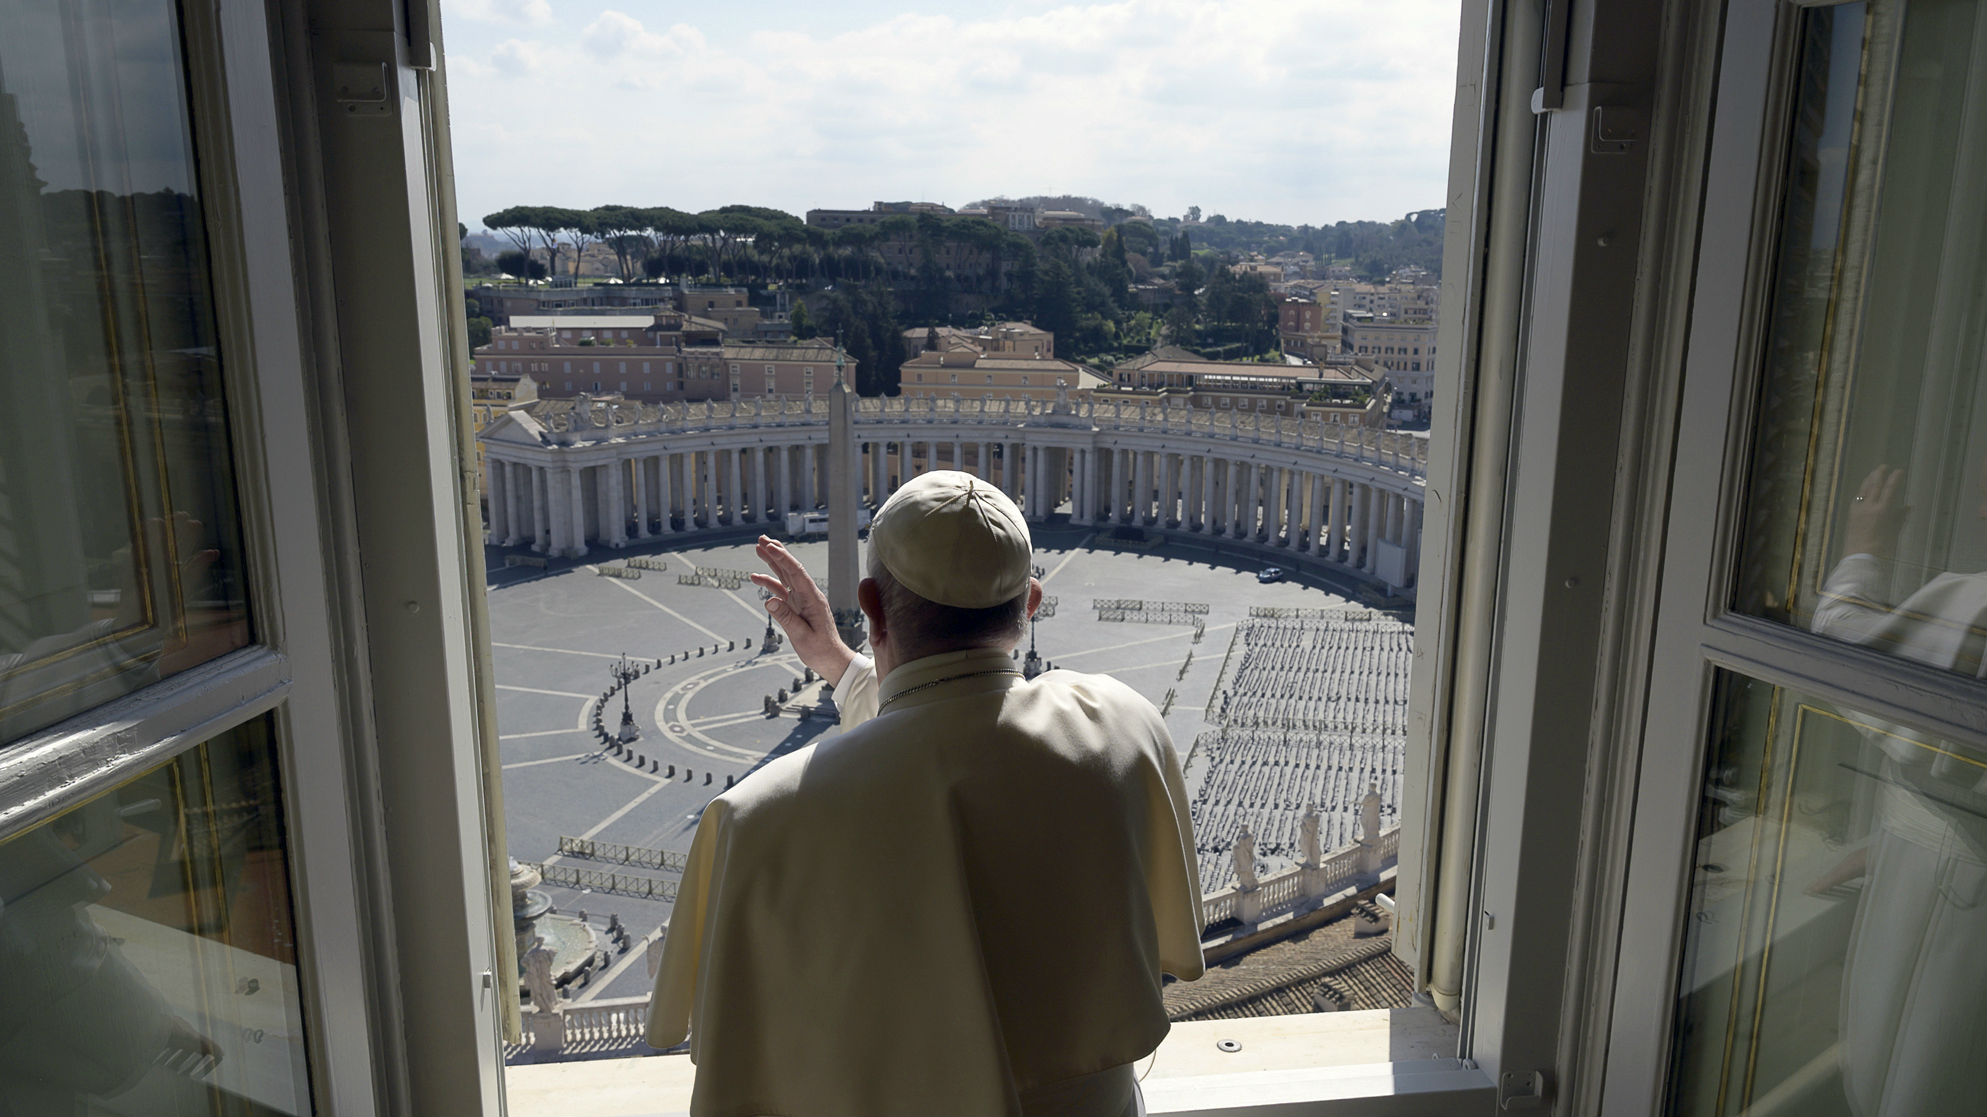 Pope Francis prays for the end of COVID-19 spread